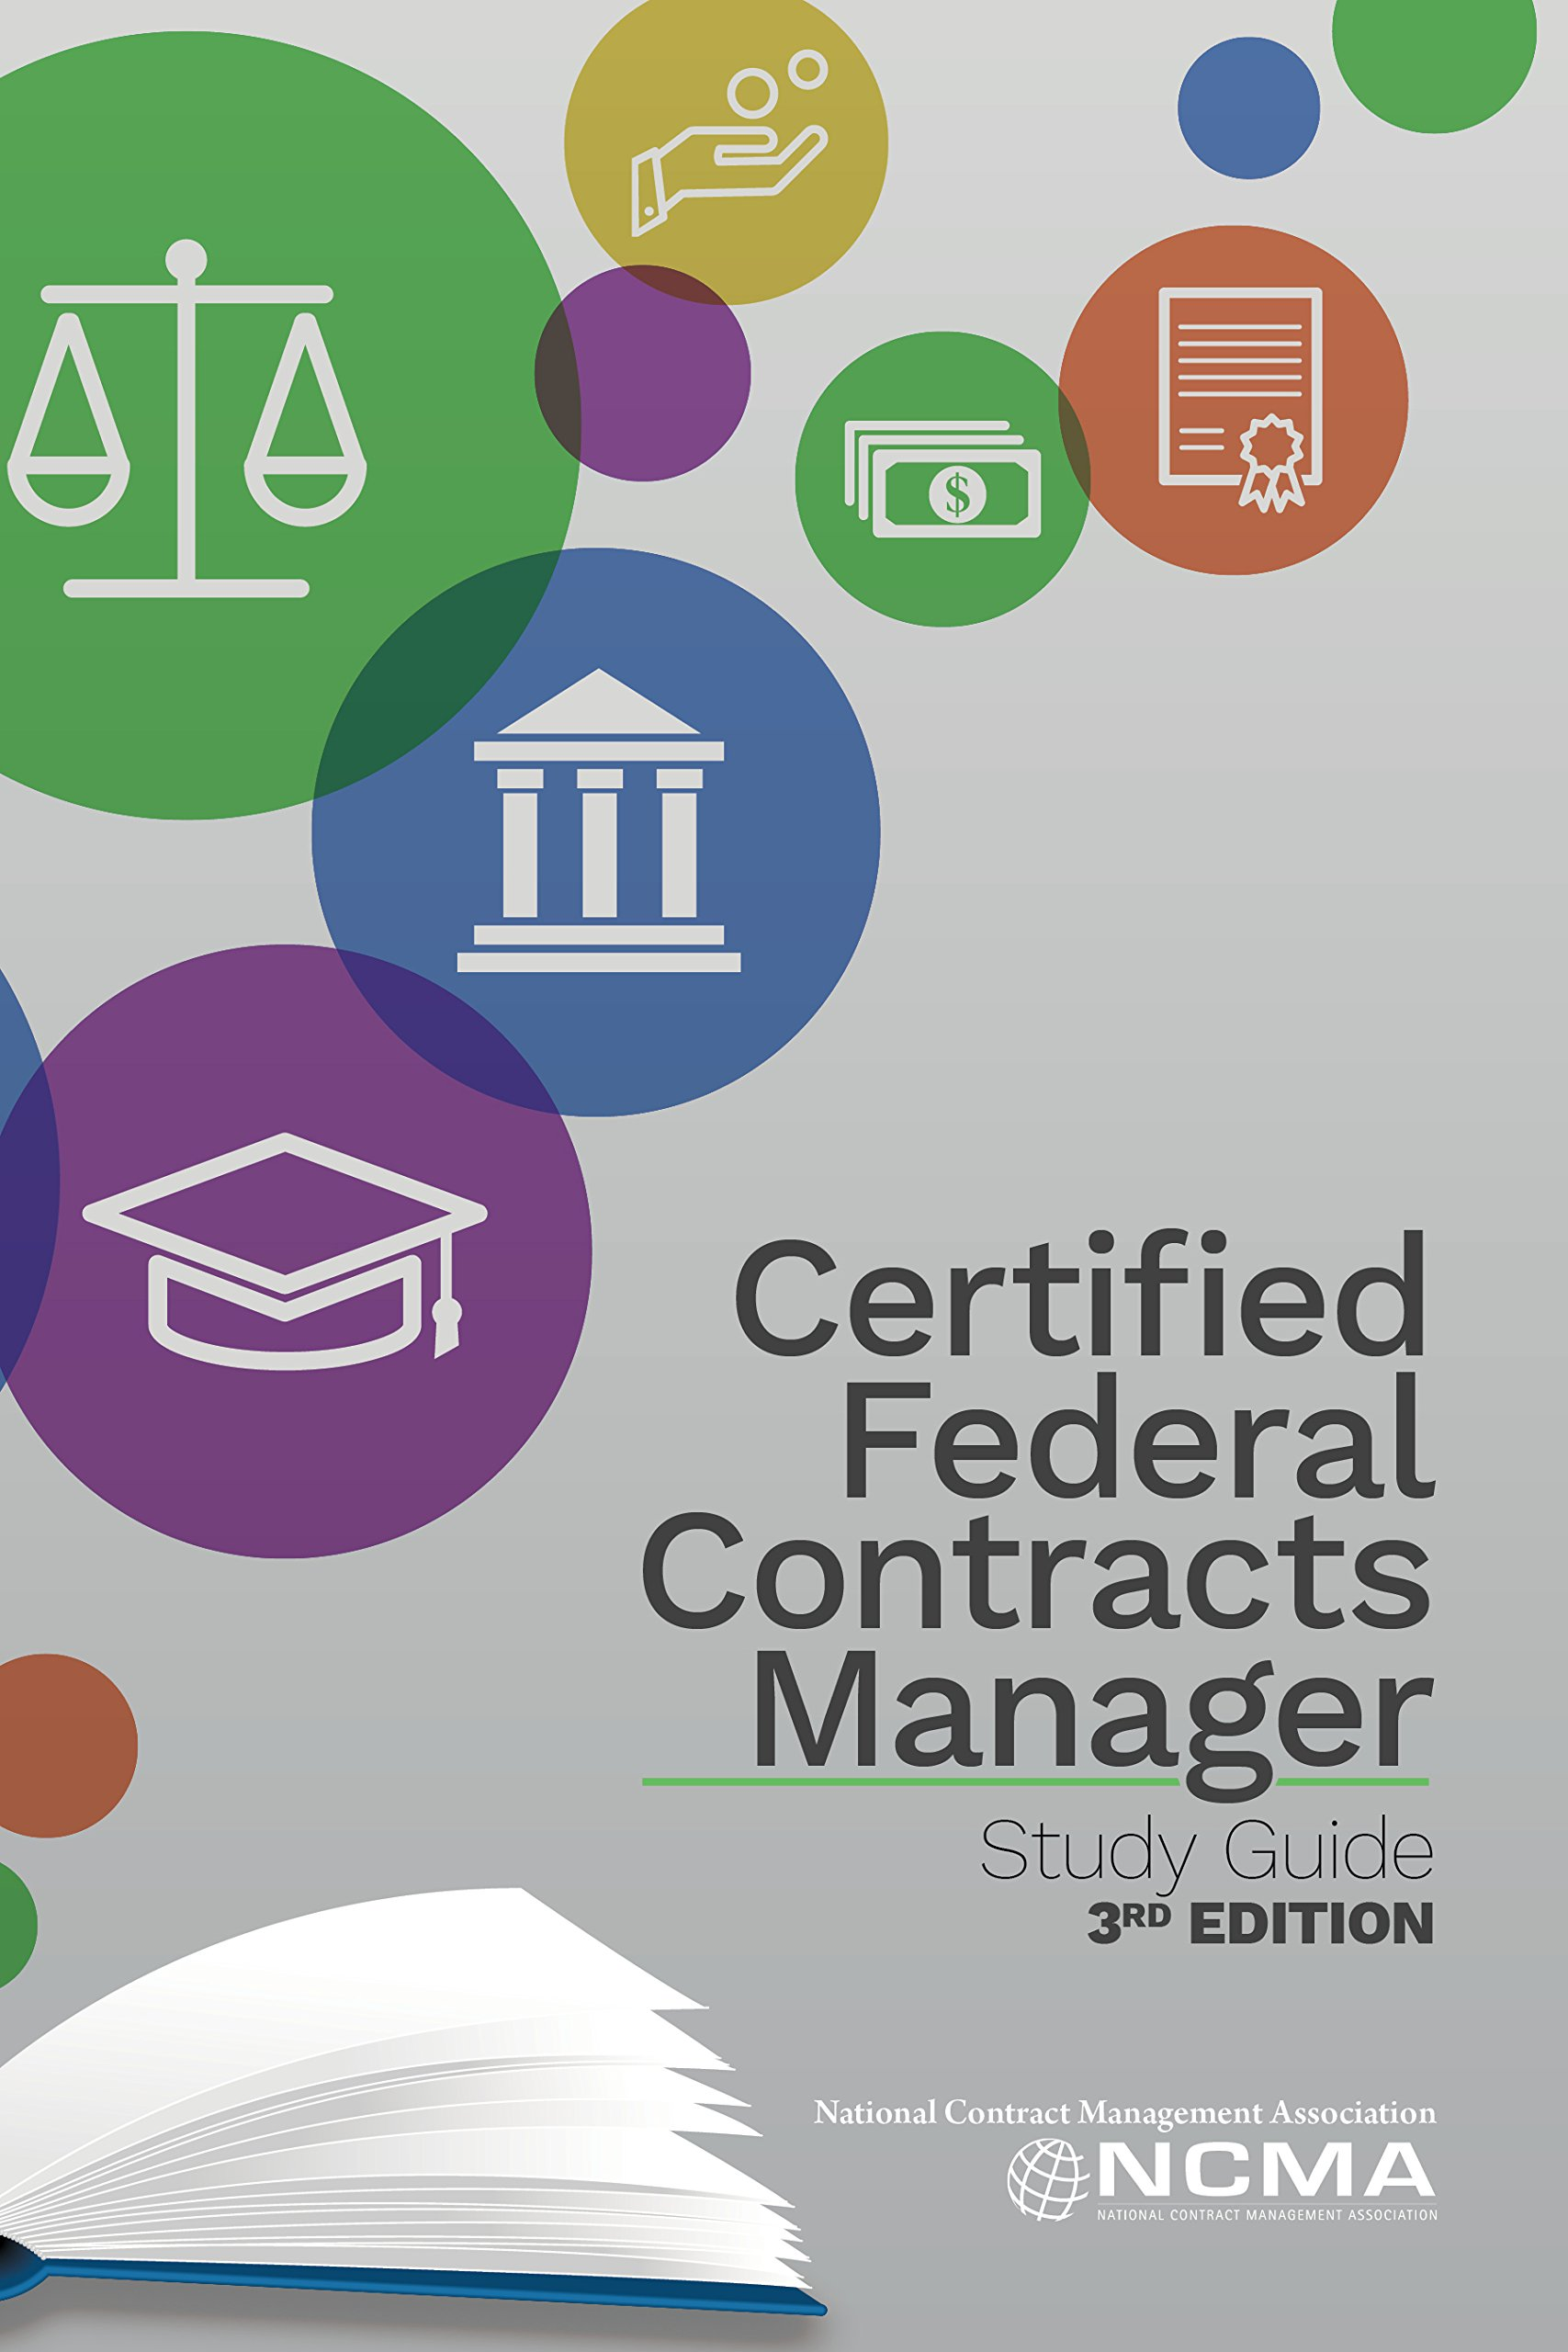 Certified federal contracts manager study guide 3rd edition certified federal contracts manager study guide 3rd edition ncma 9780982838532 amazon books xflitez Gallery